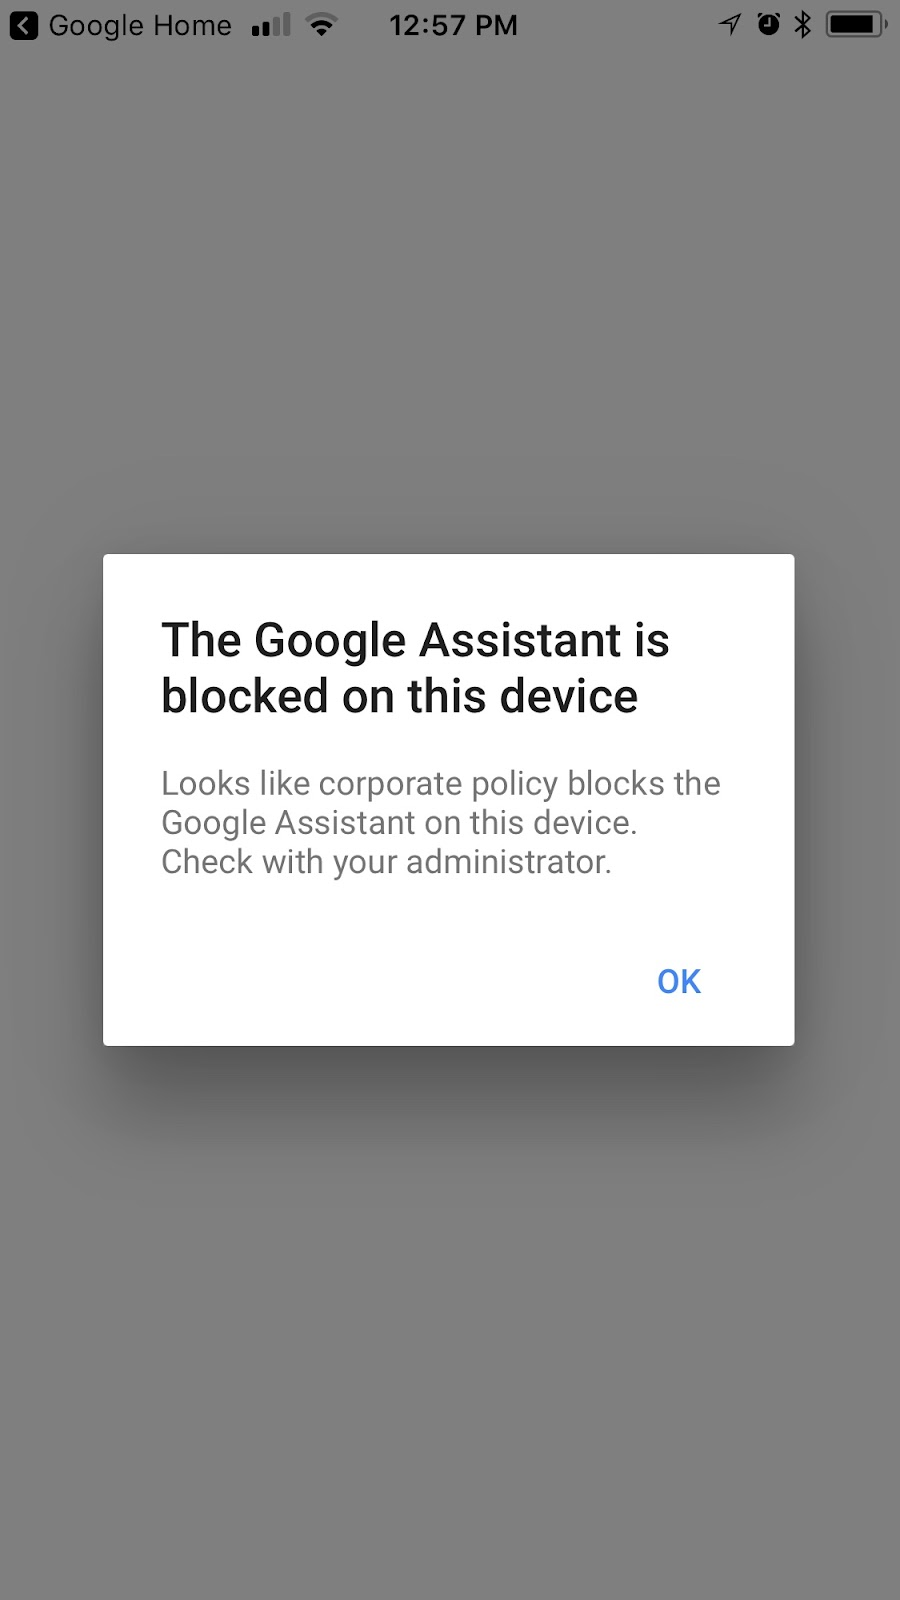 Google Assistant is blocked on device? - Google Nest Help